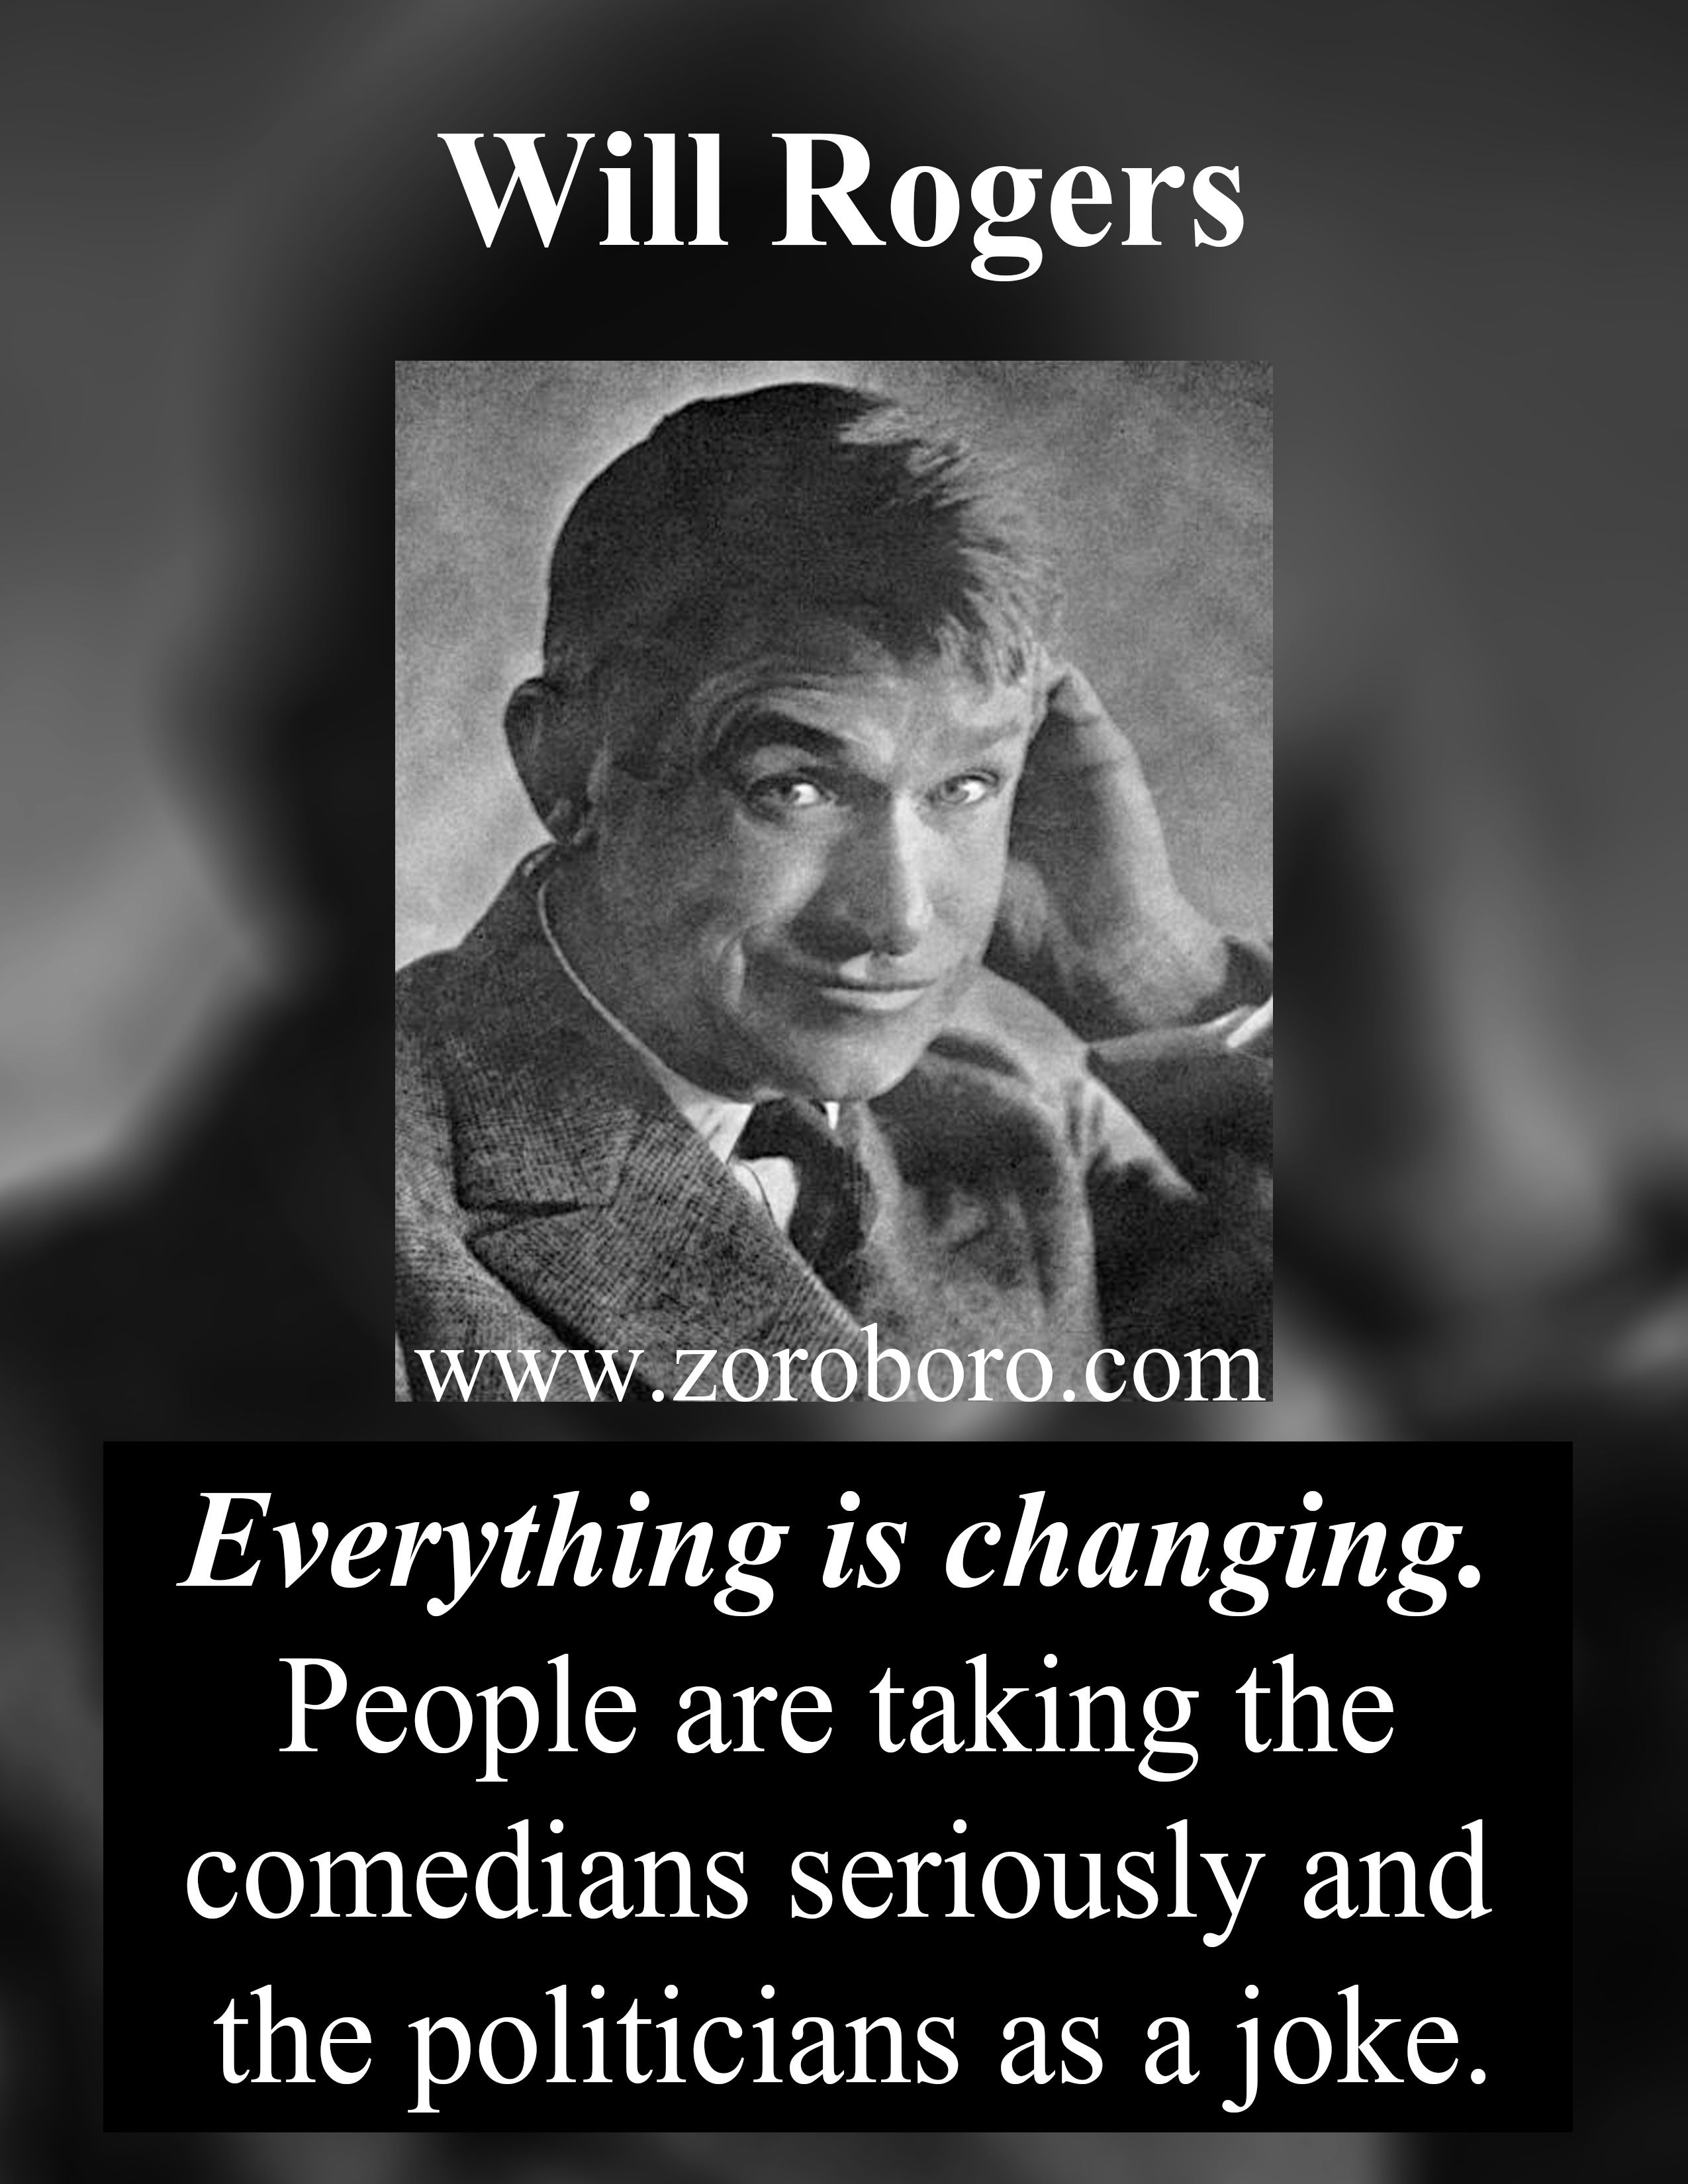 Will Rogers Quotes Funny Wisdom Leadership Will Rogers Inspirational Saying Will Rogers Quotes Funny Uplifting Quotes Funny Positive Quotes